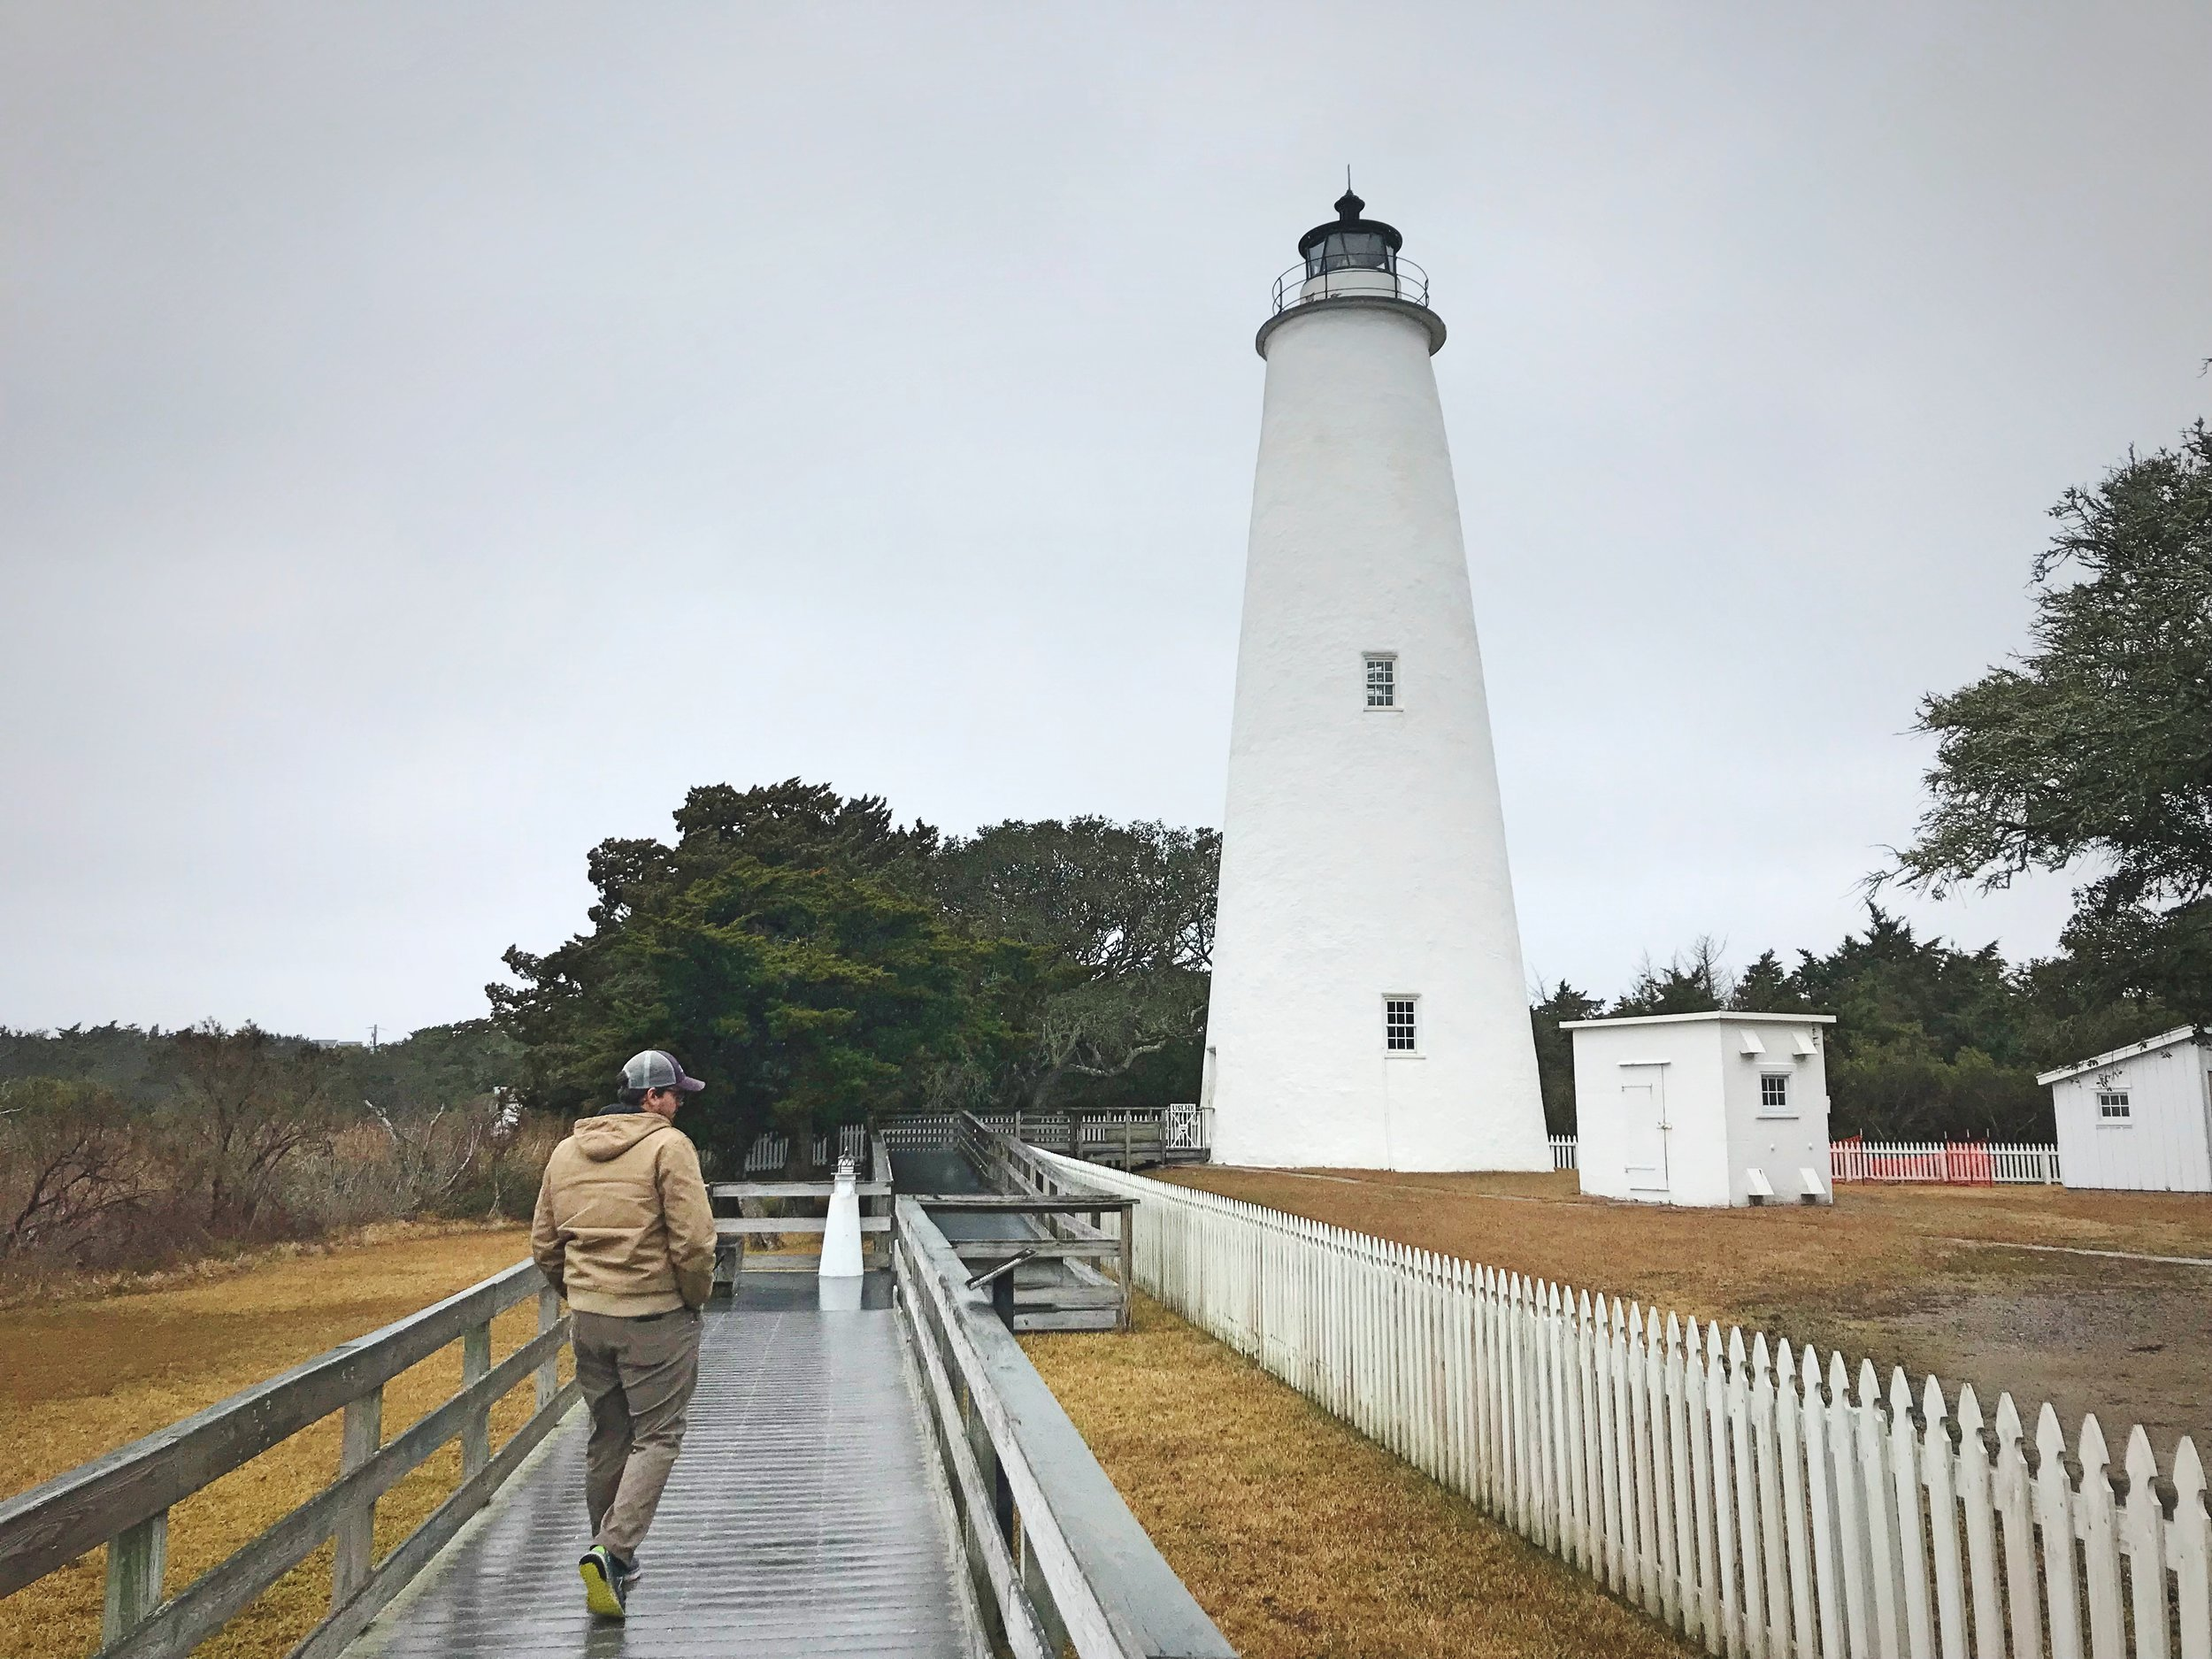 We endured some pretty cold, wet weather in the Outer Banks, but we still saw a lot.